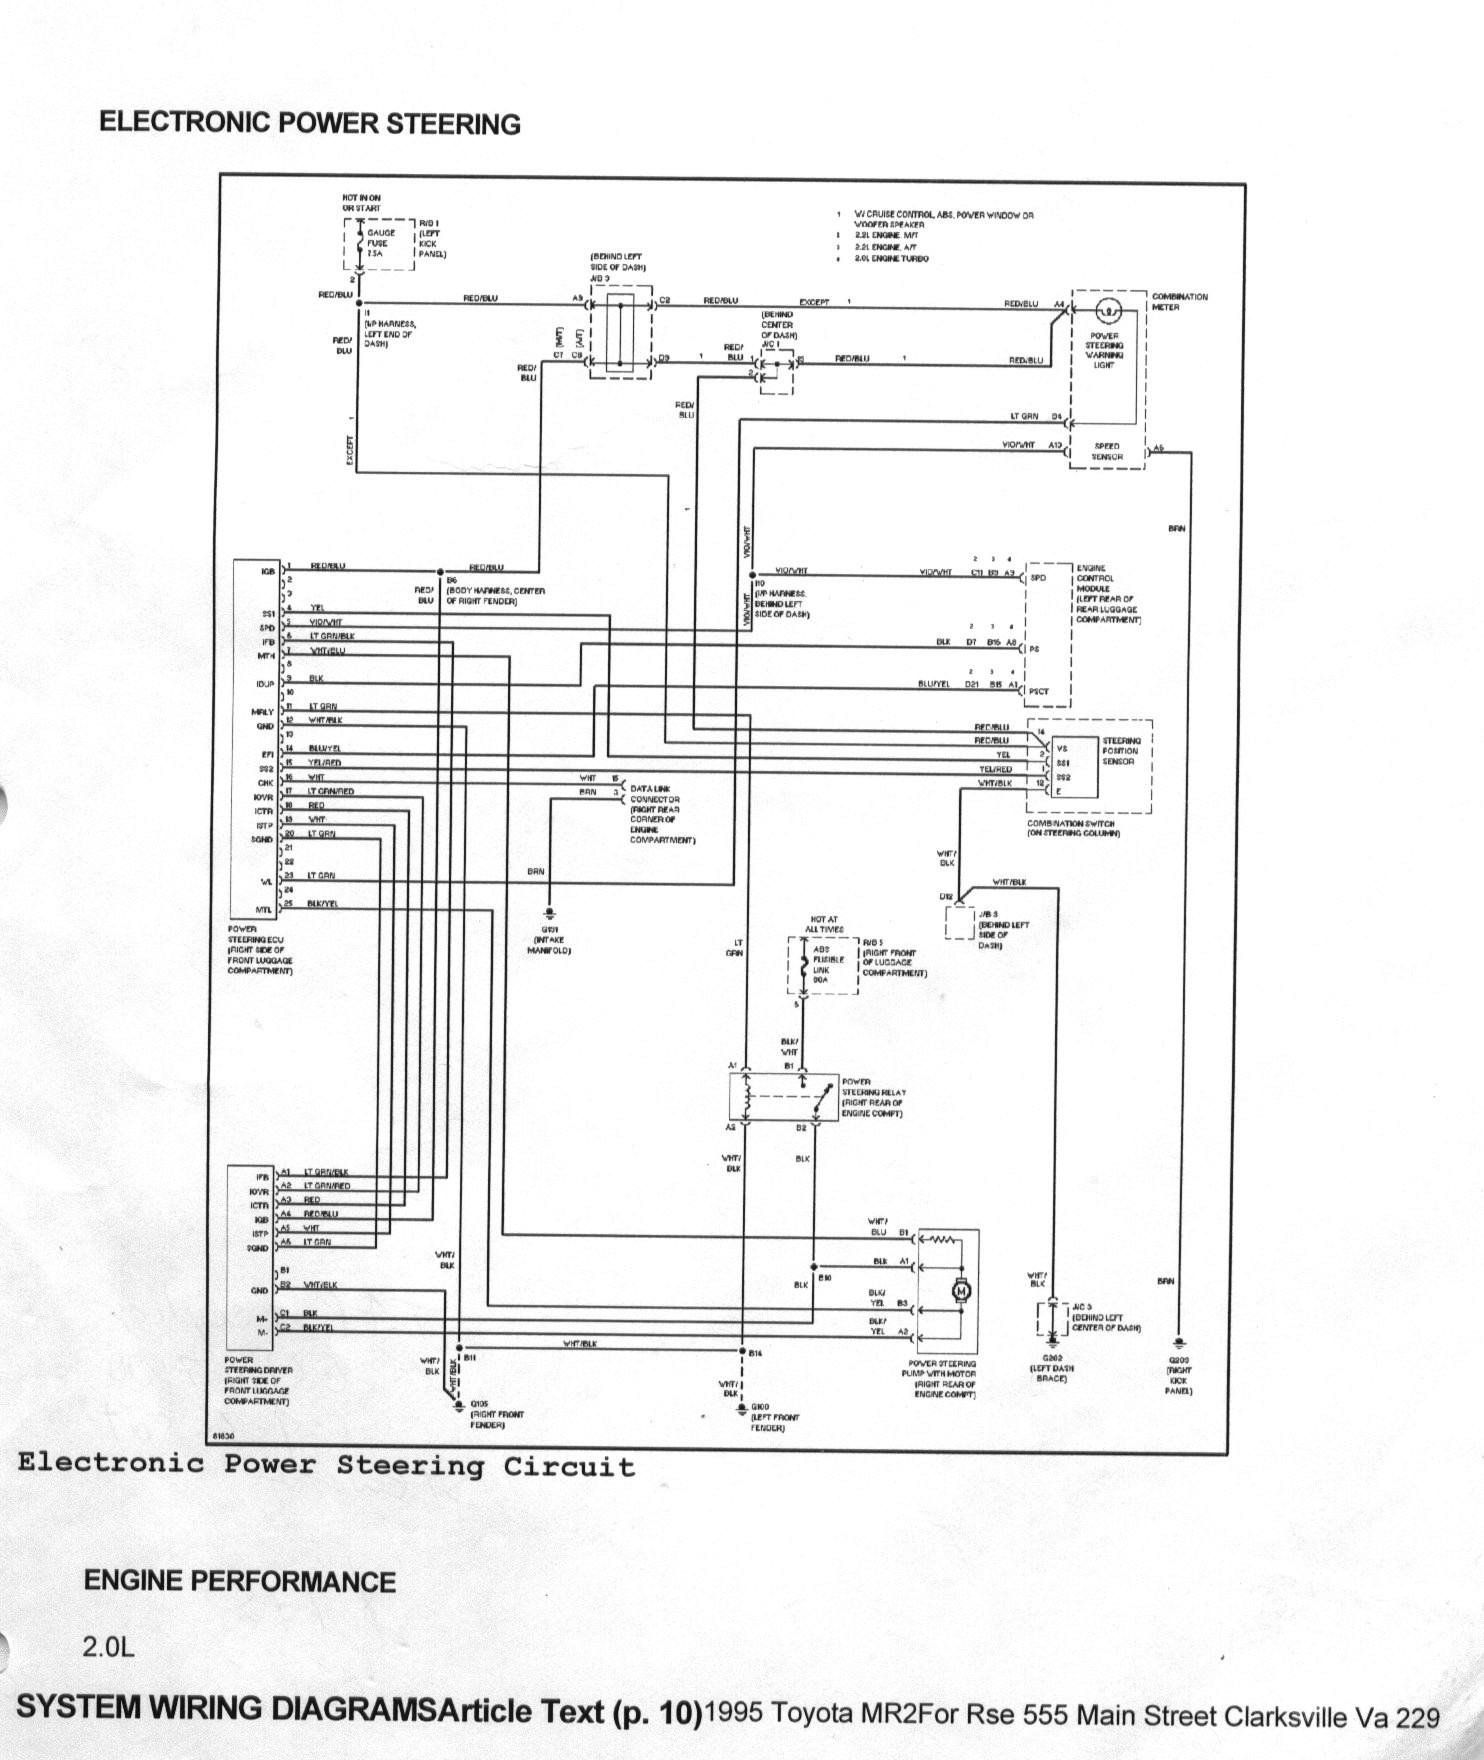 Mazda 3 Electric Power Steering Pump Wiring Diagram